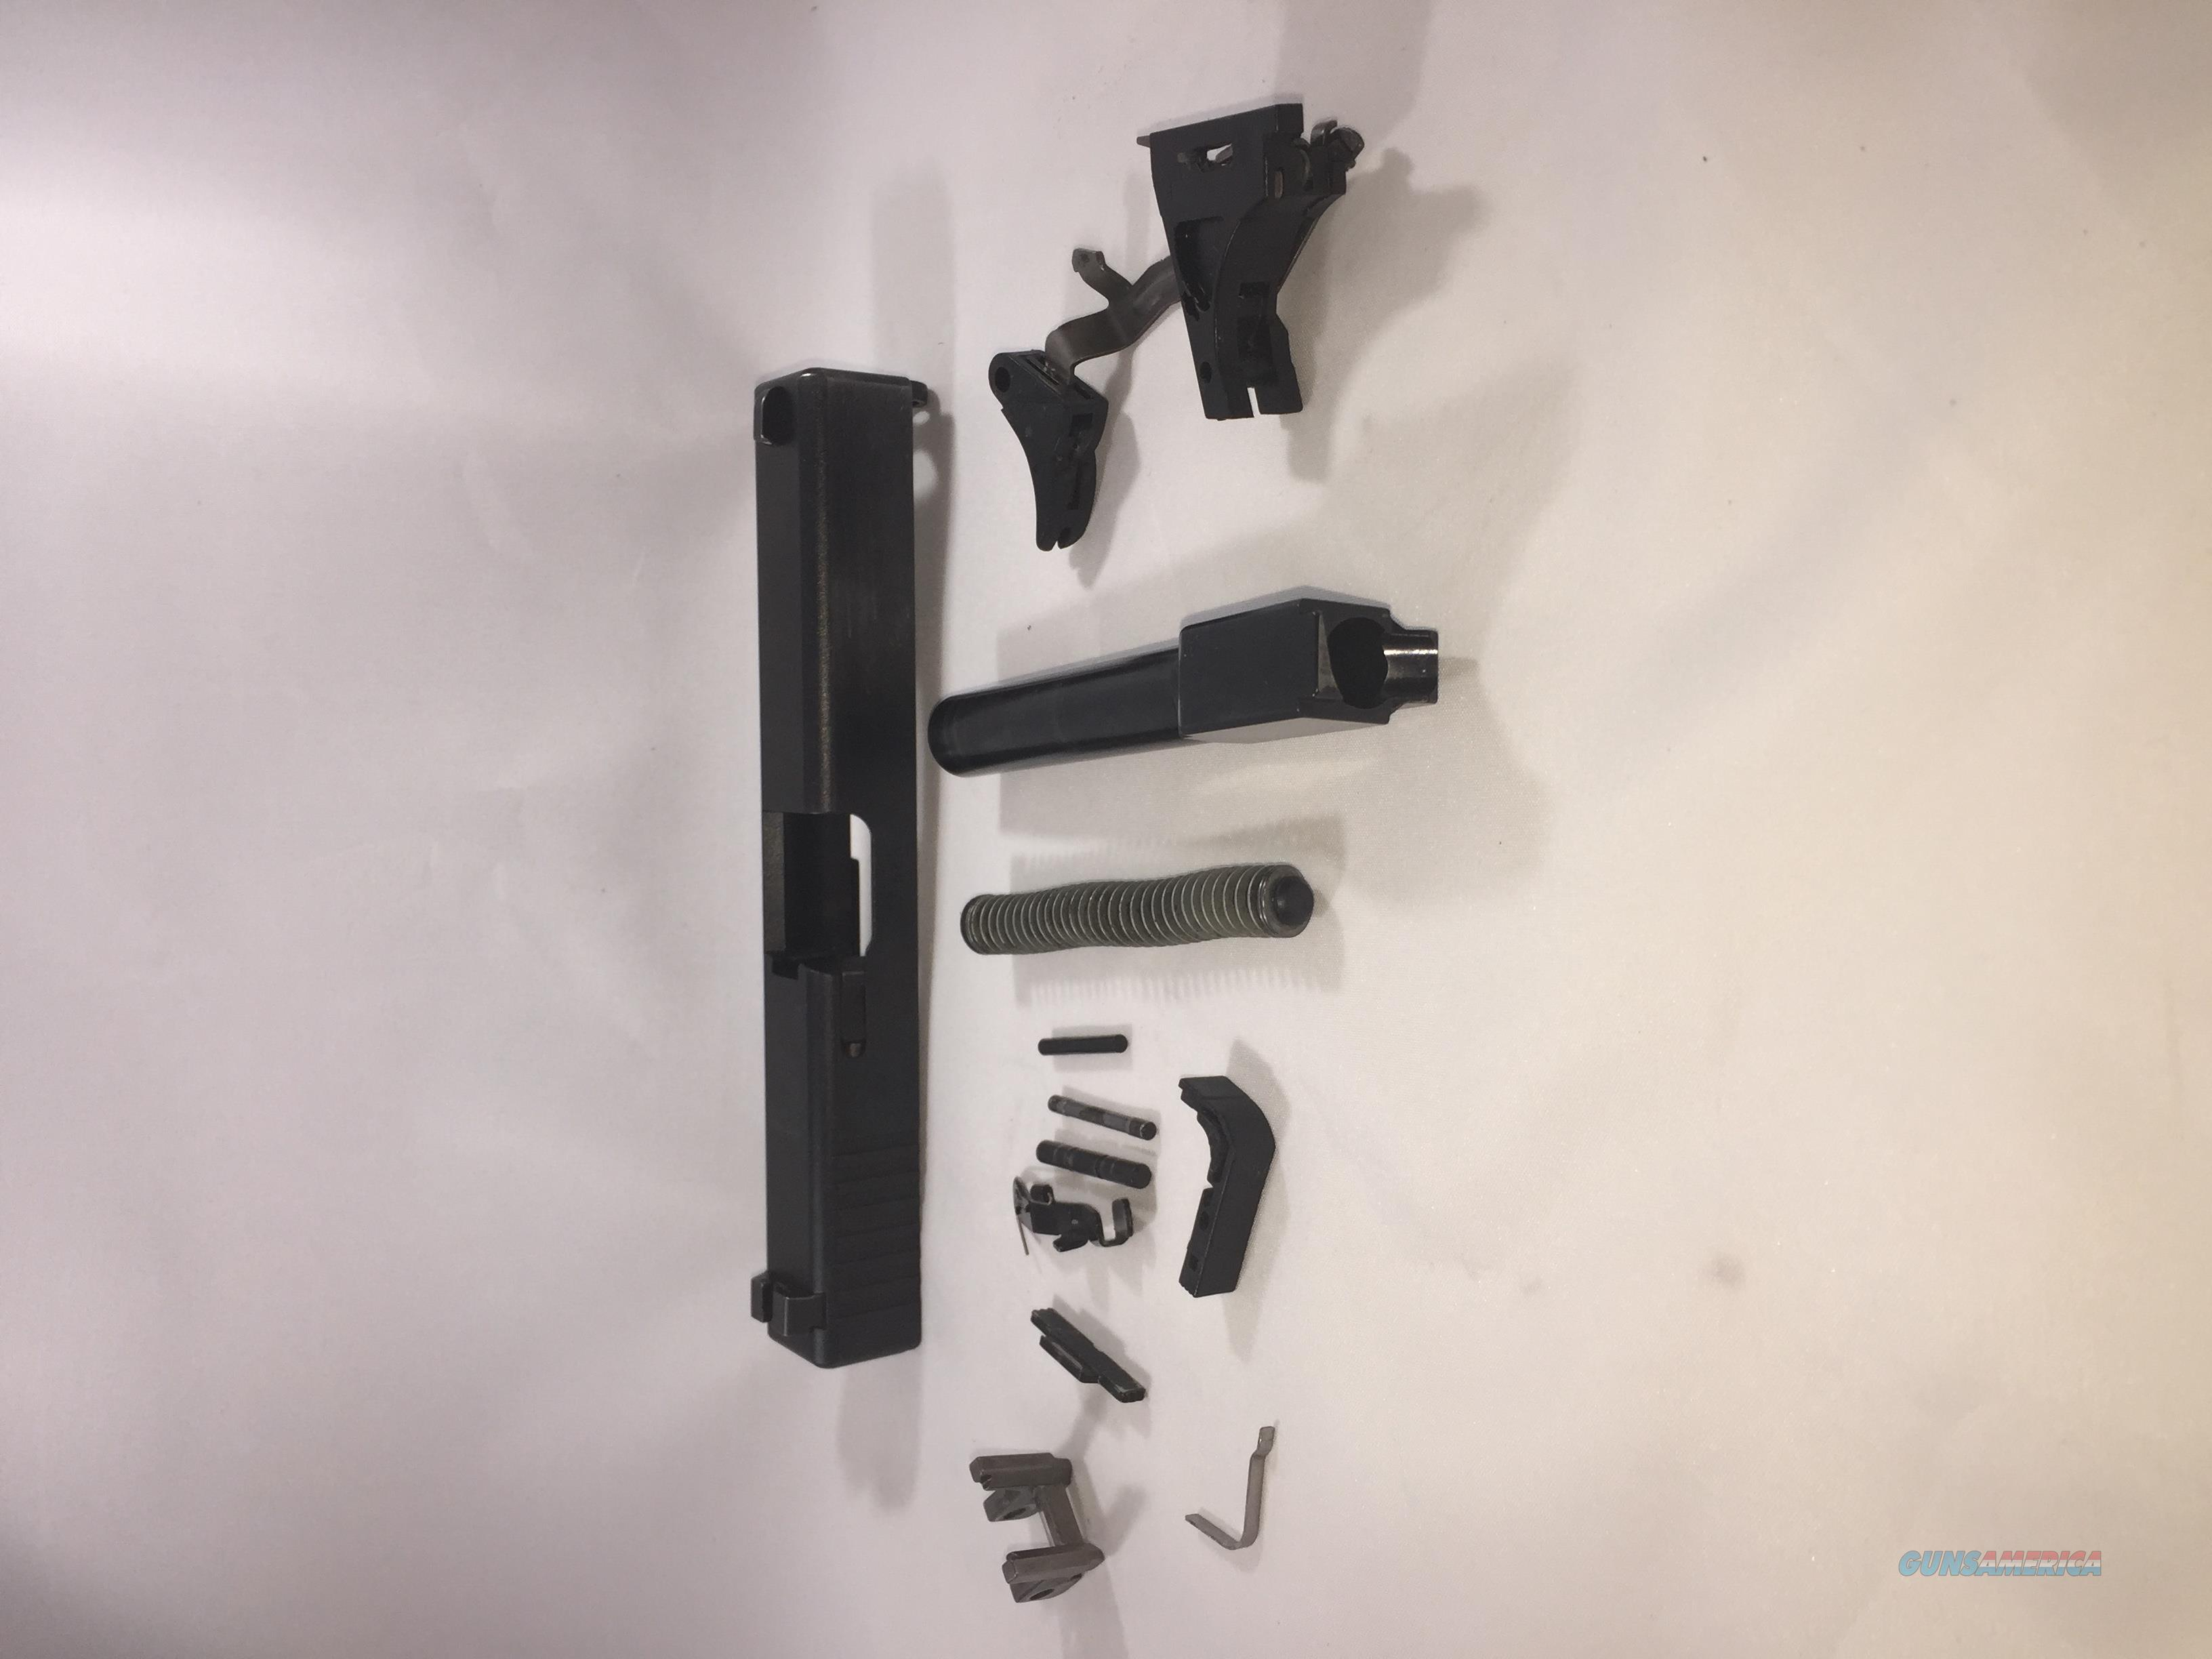 Glock 23/22 Parts kit build kit  Guns > Pistols > Parts Guns - Pistols